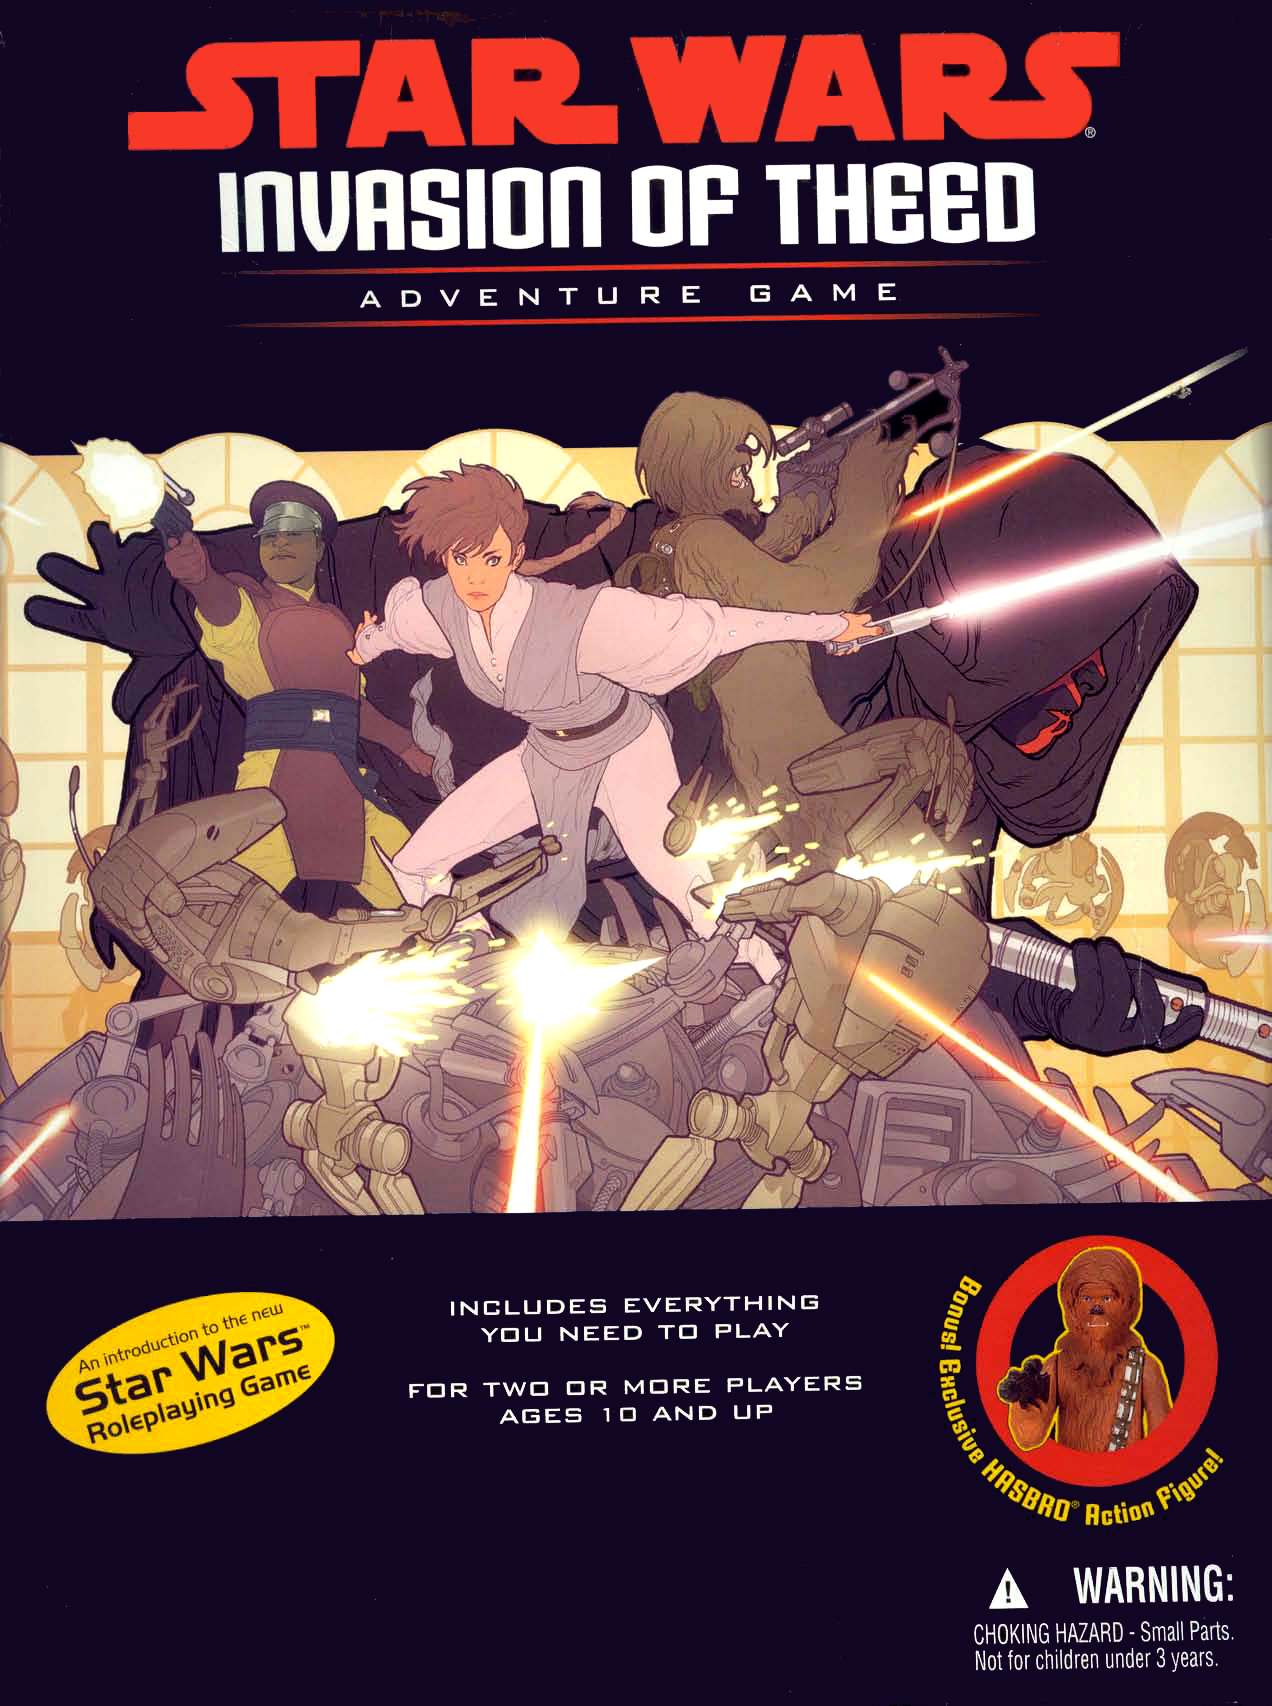 Star Wars: Invasion of Theed Adventure Game